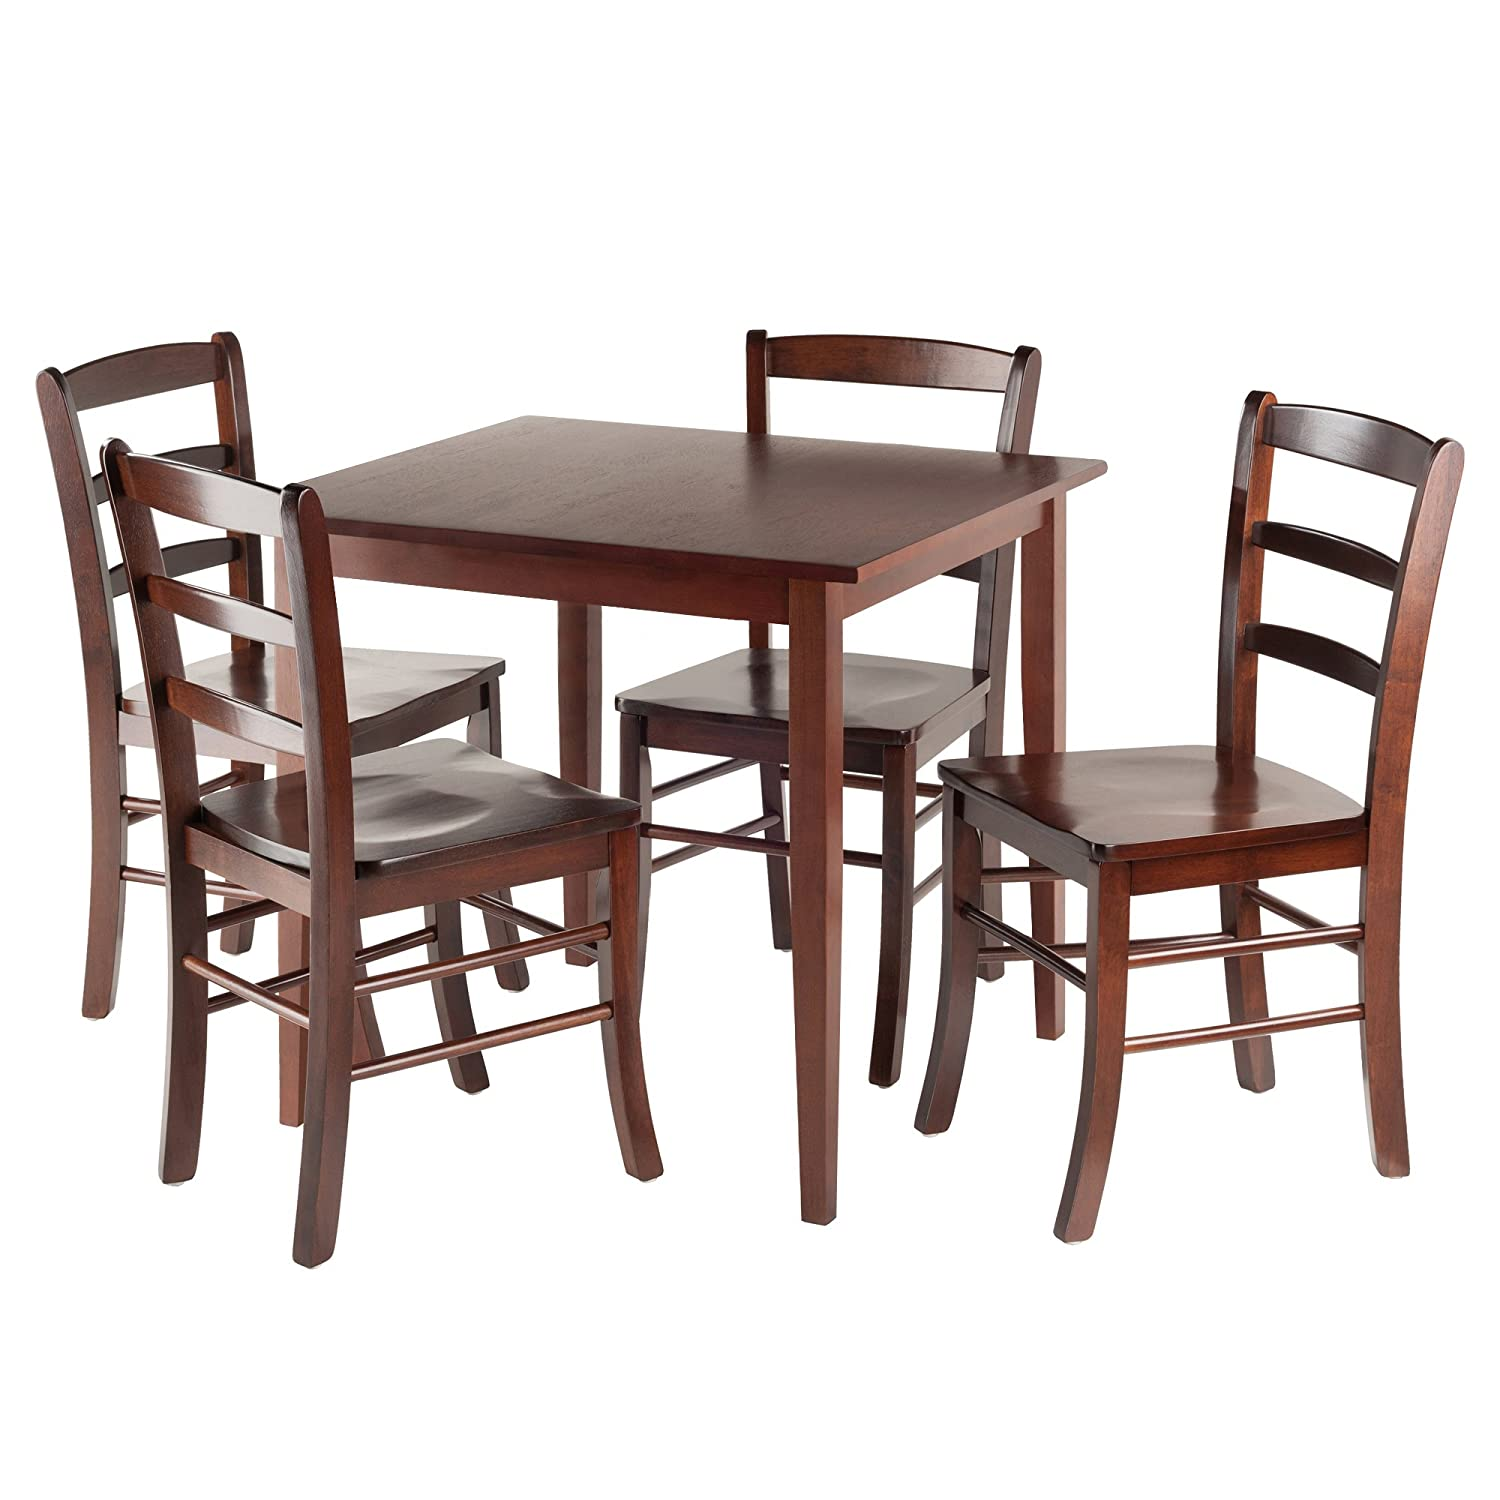 Winsome Groveland Square Dining Table, 4 Chairs, Antique Walnut